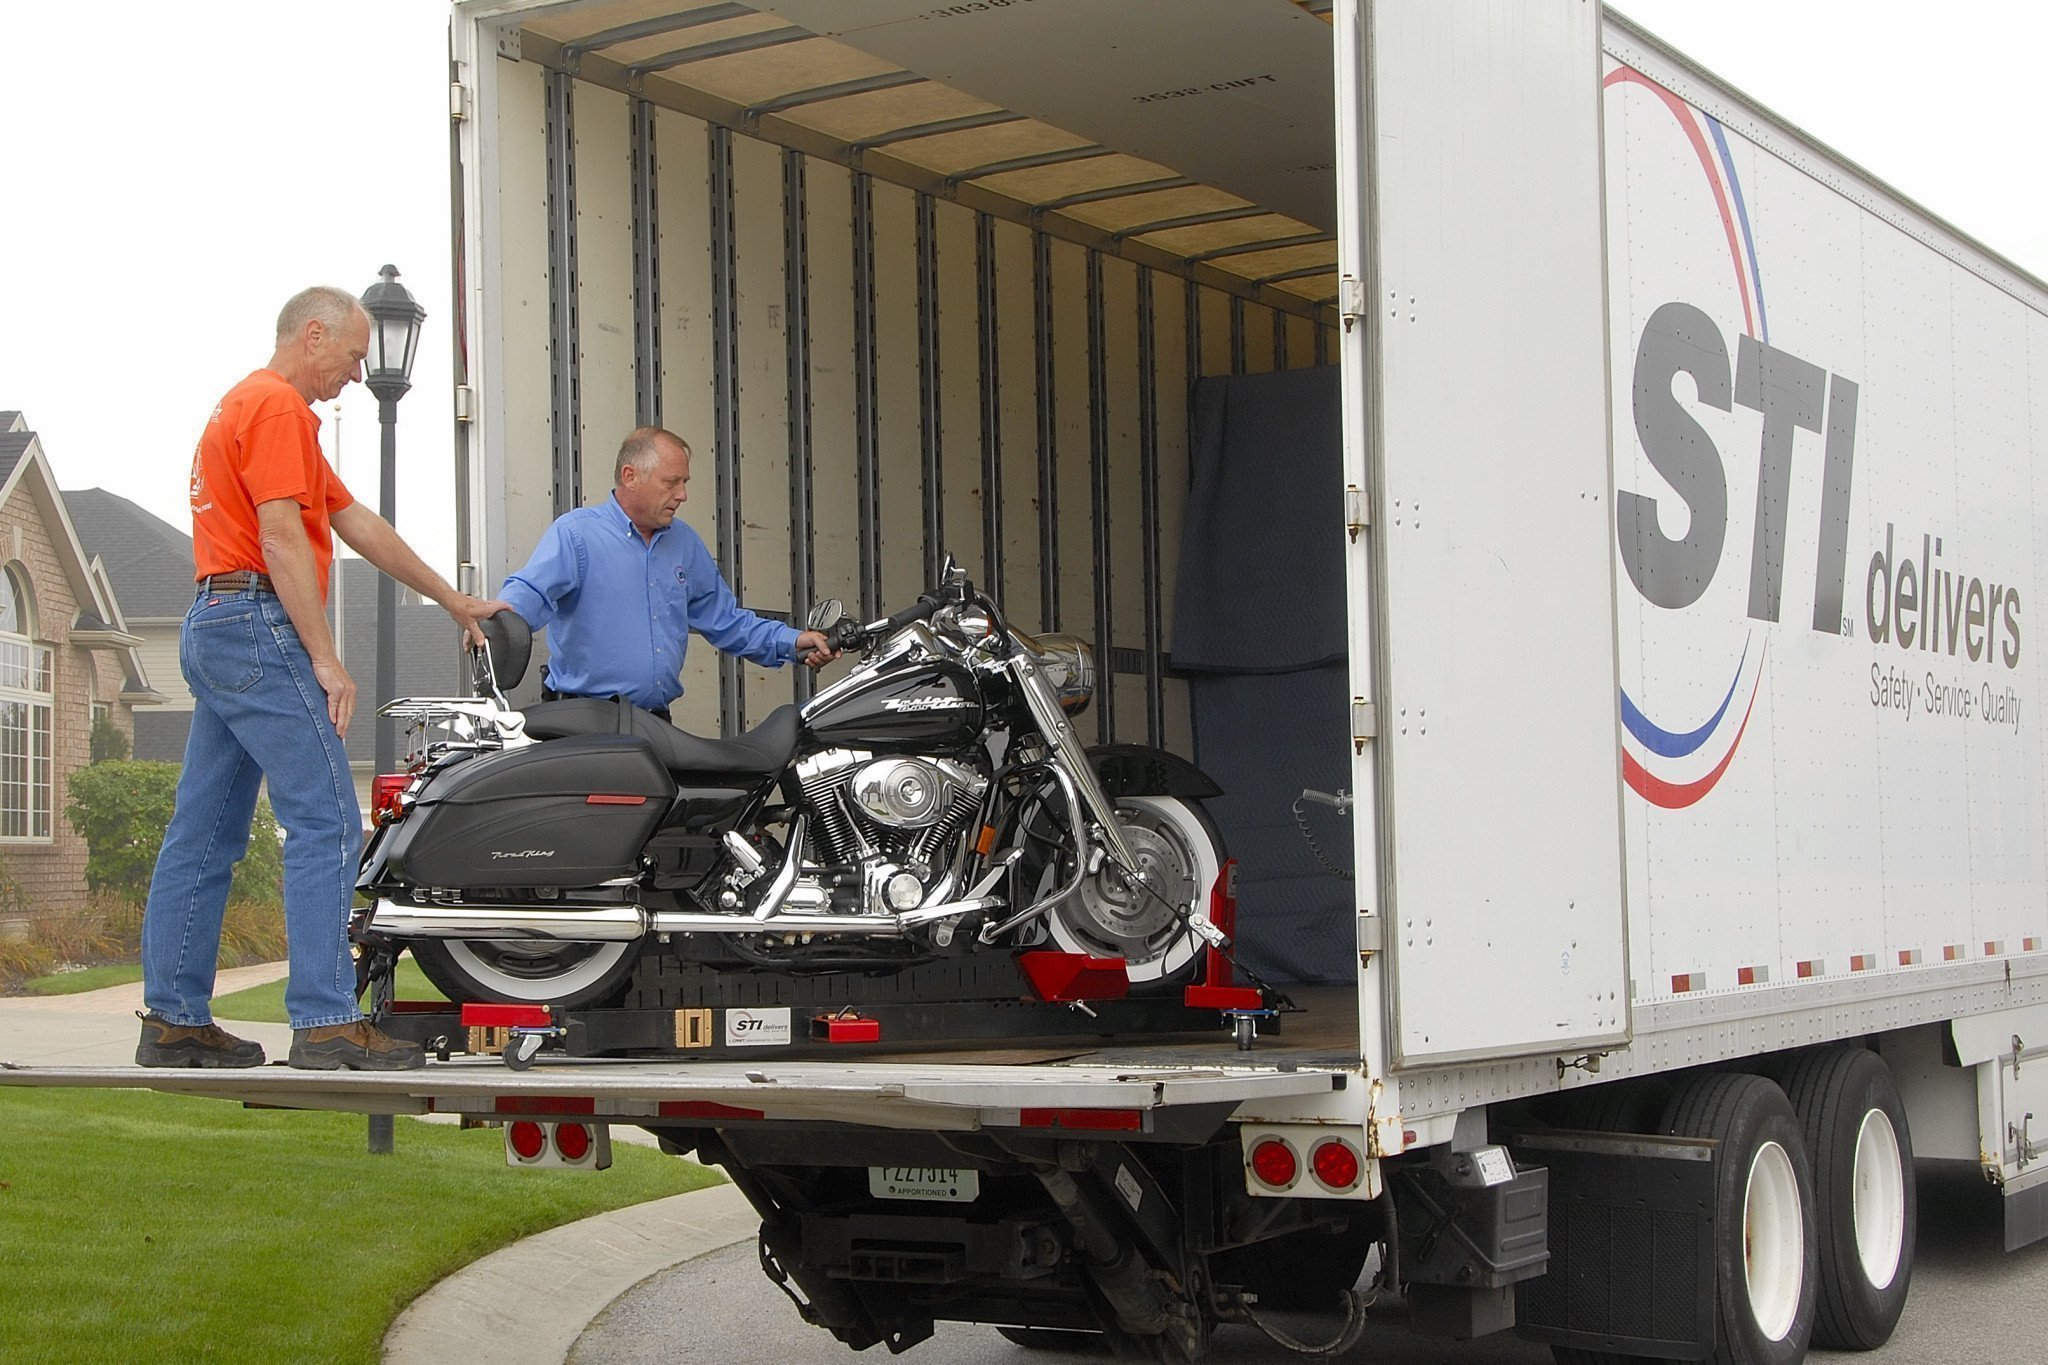 Men loading a motorcycle